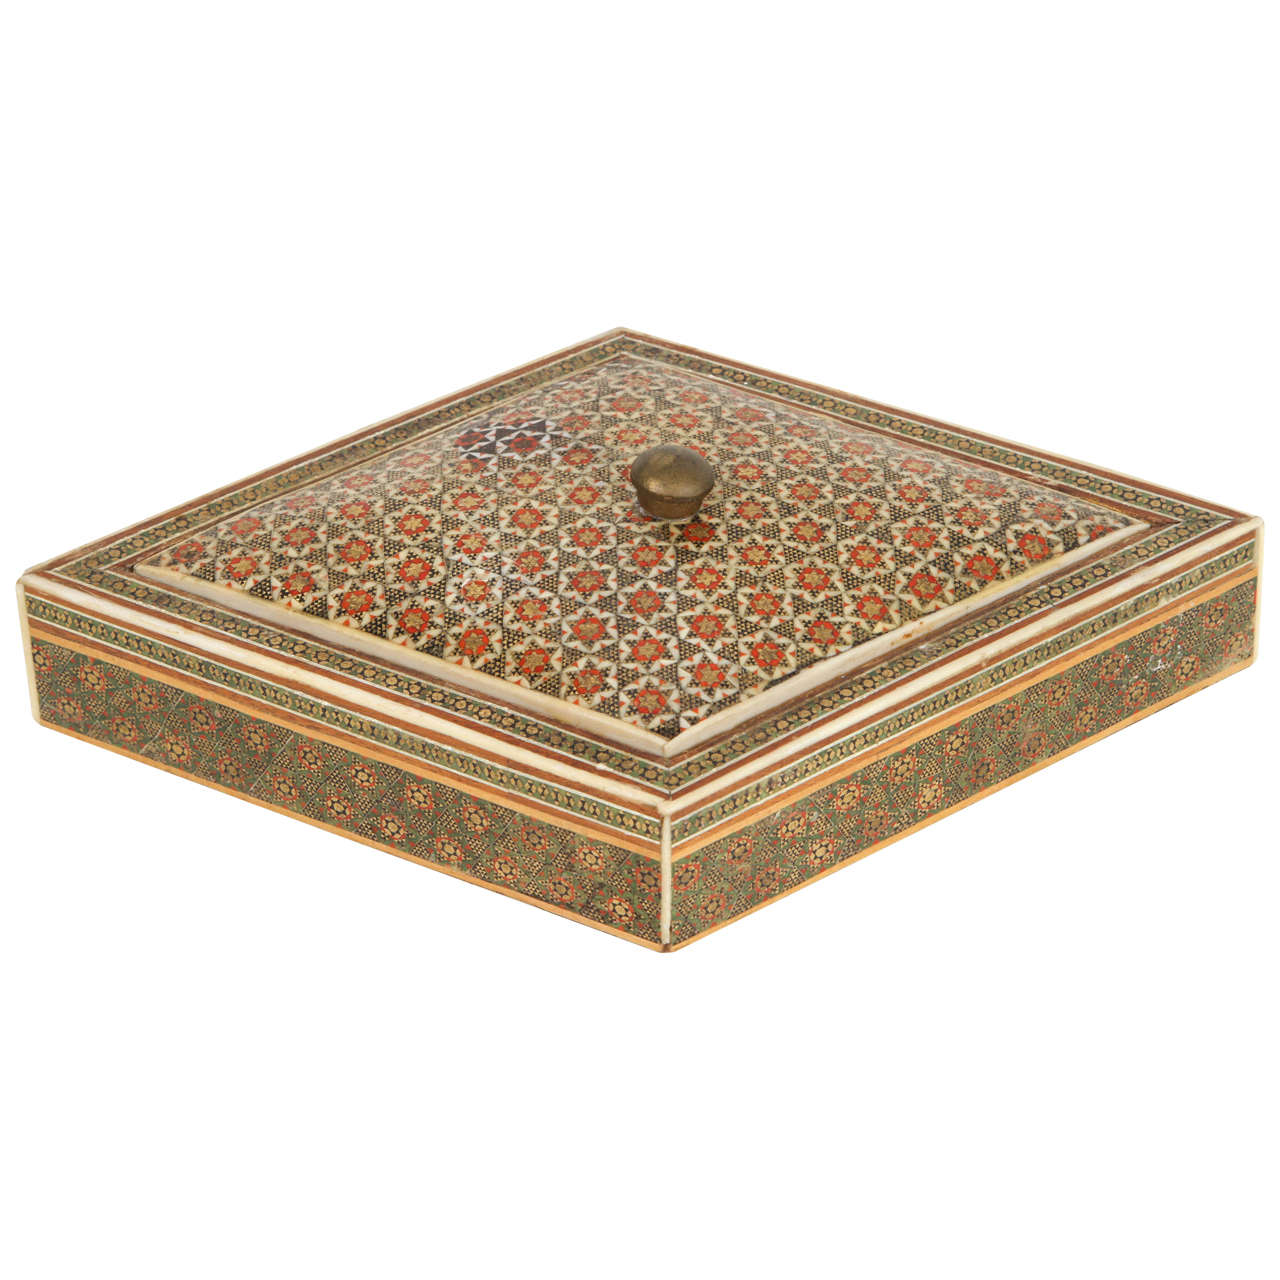 AngloIndian Micro Mosaic Inlaid Jewelry Box at 1stdibs